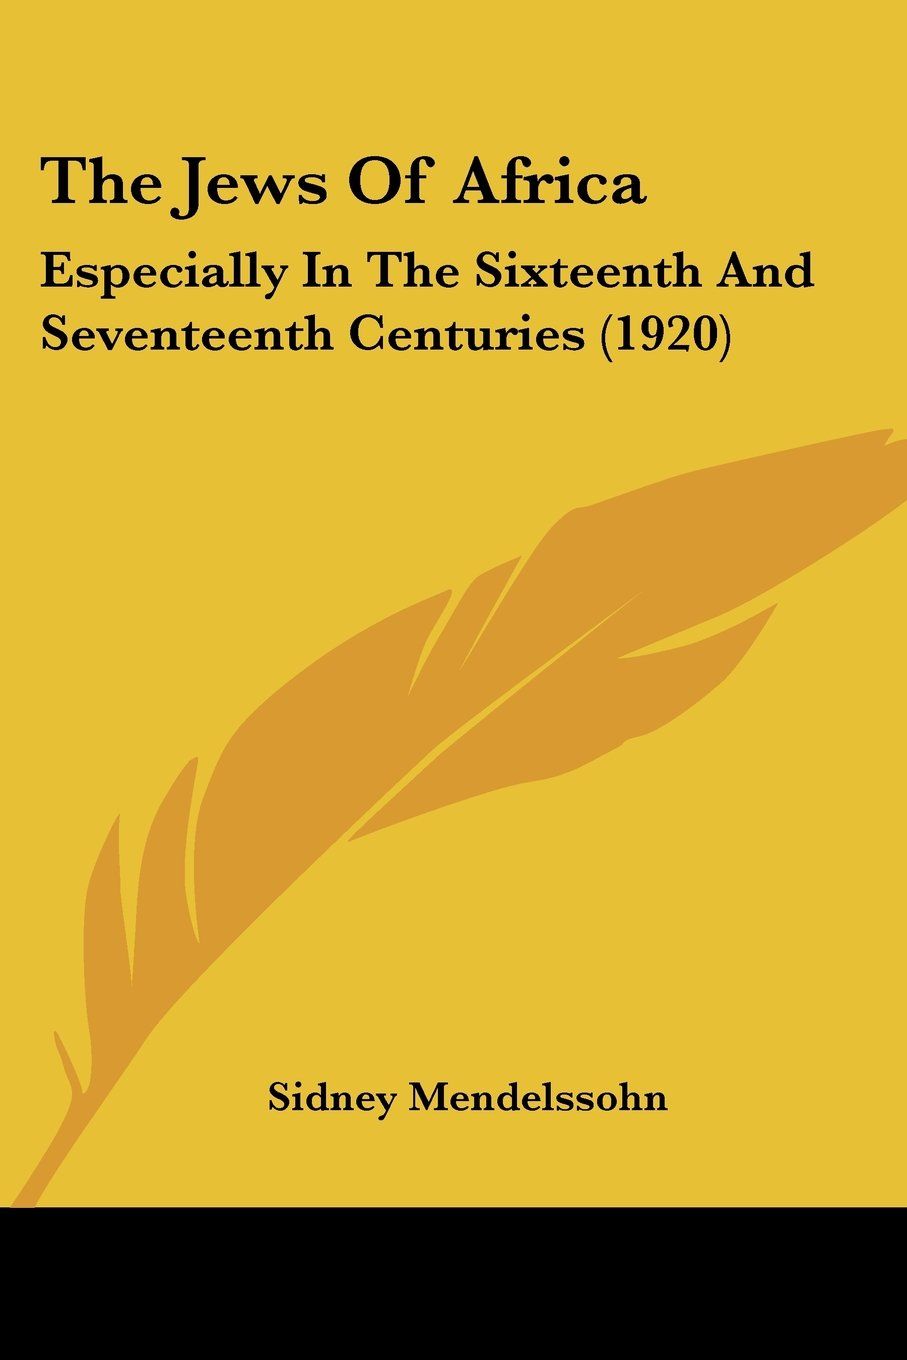 The Jews Of Africa: Especially In The Sixteenth And Seventeenth Centuries (1920) PDF